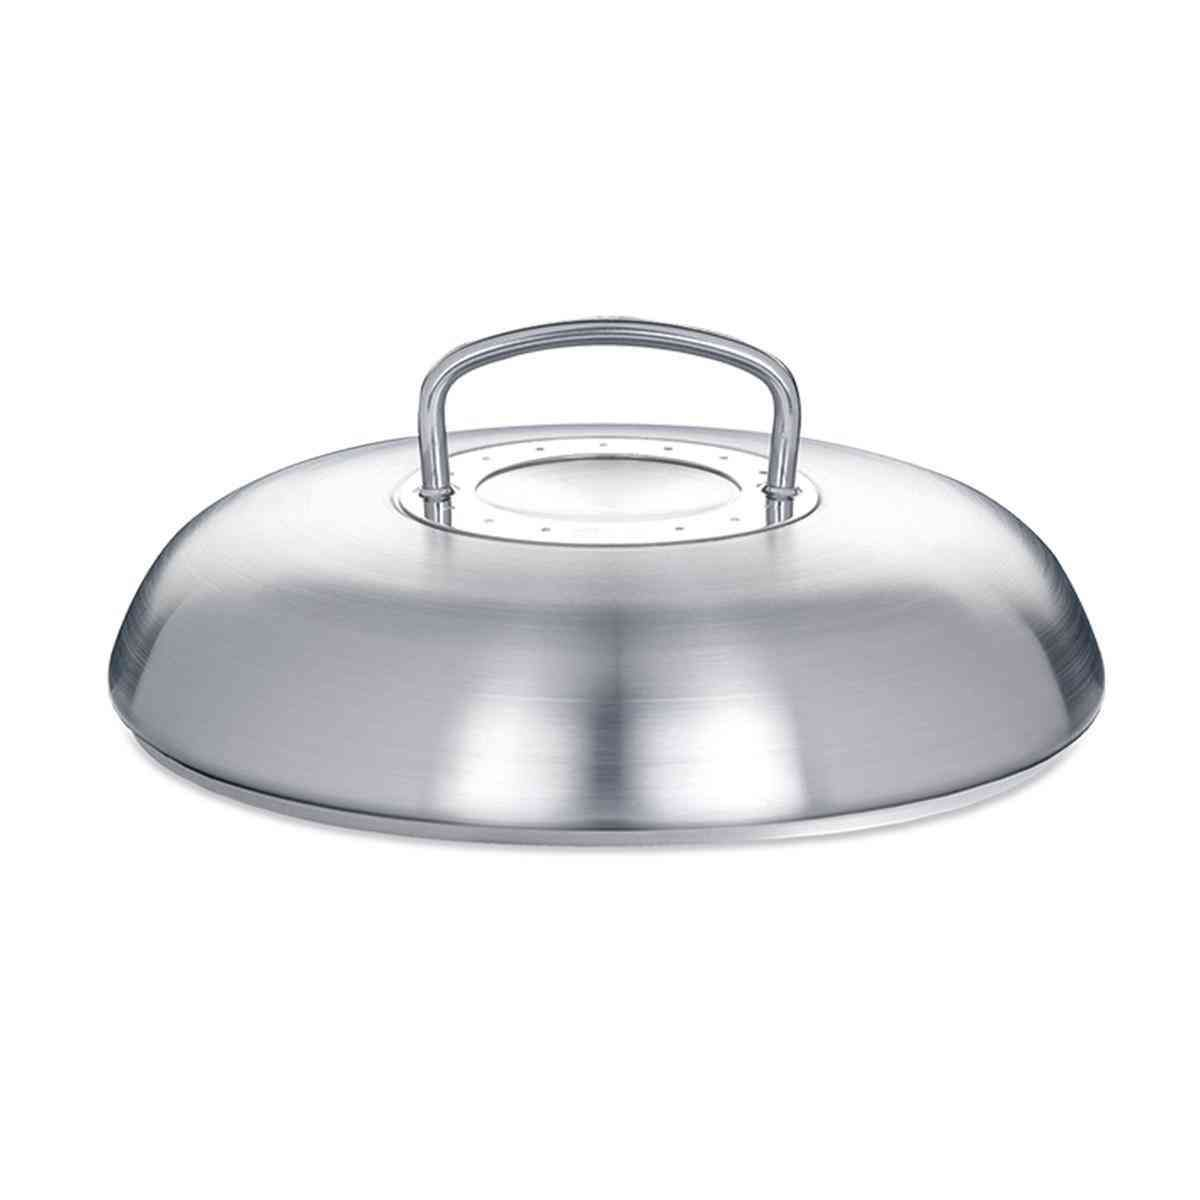 original-profi collection high-domed pan lid 28 cm